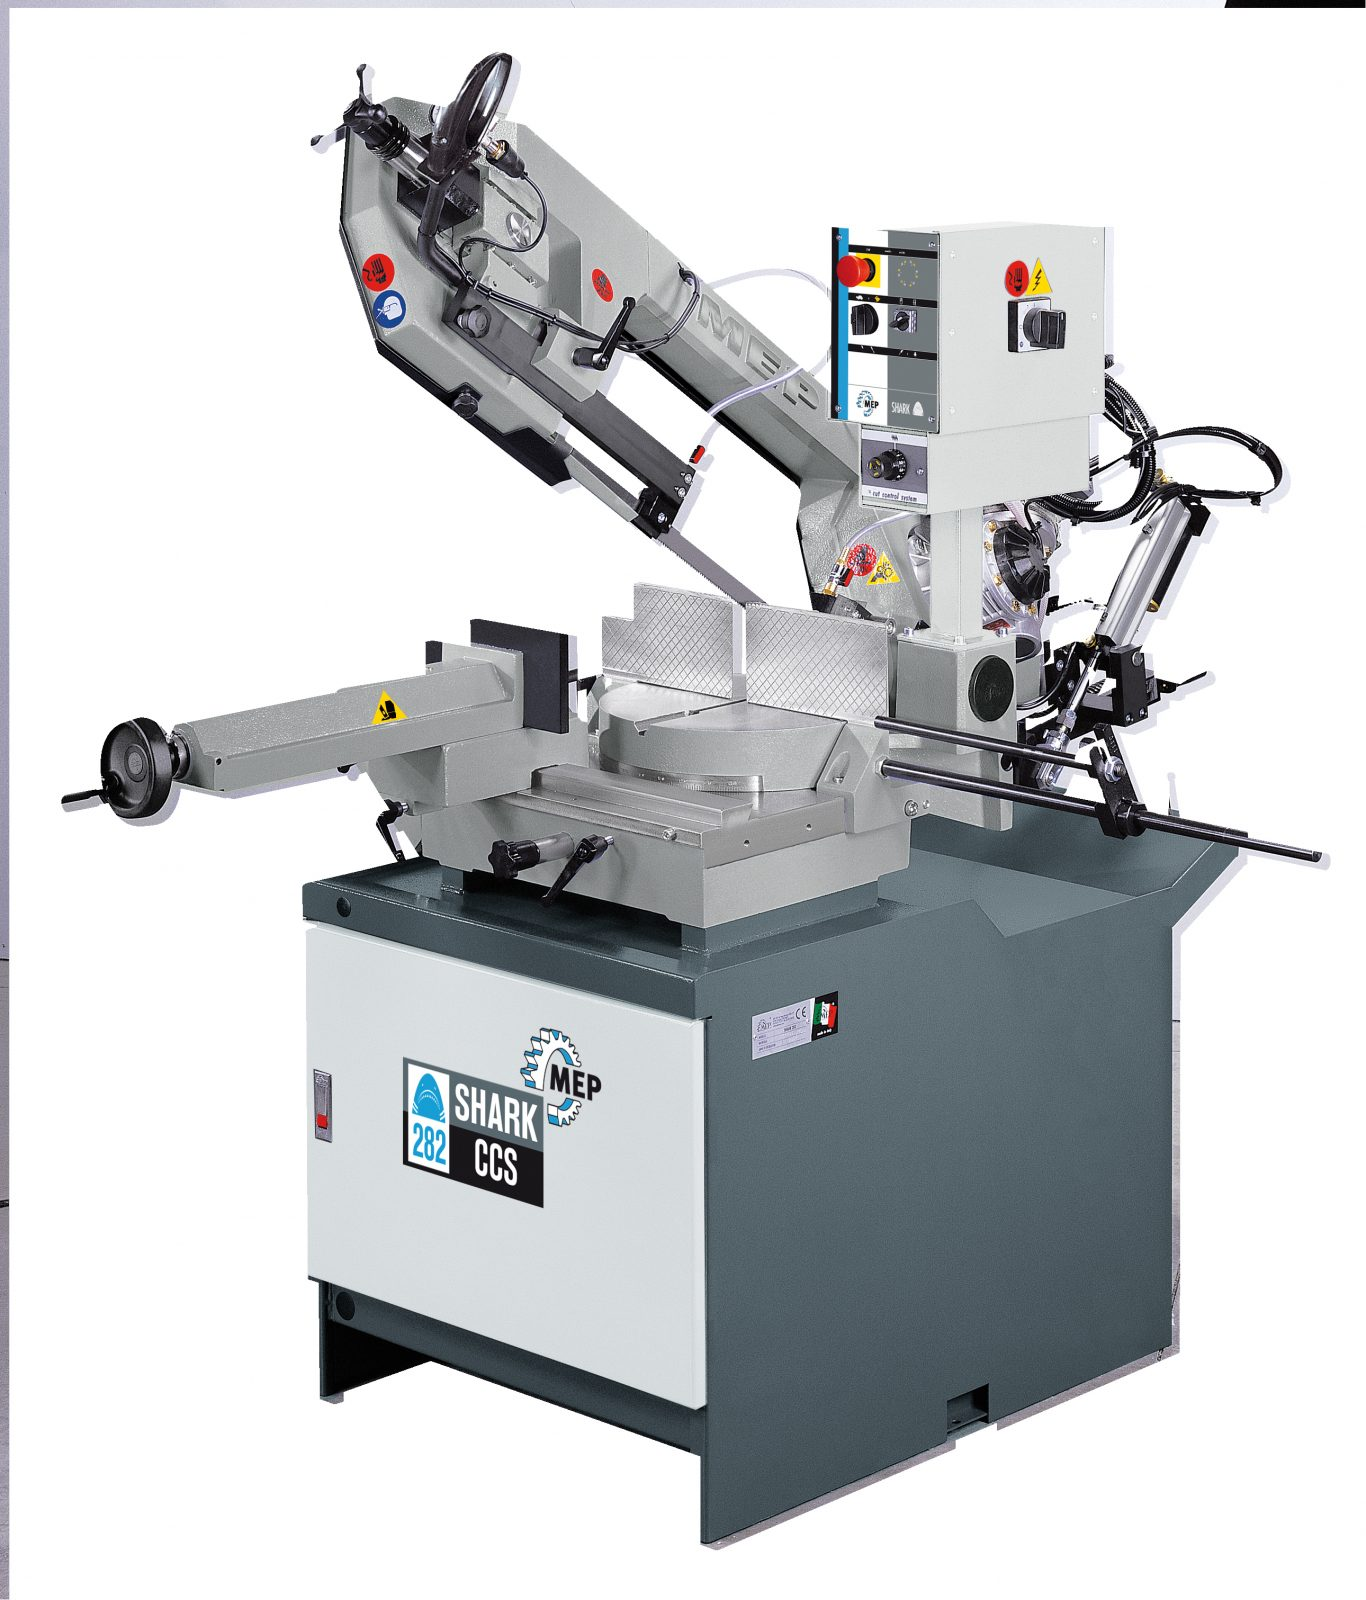 Mep Shark 282 Ccs    Ma Pulldown Bandsaw With Automatic Downfeed  Semi Automatic